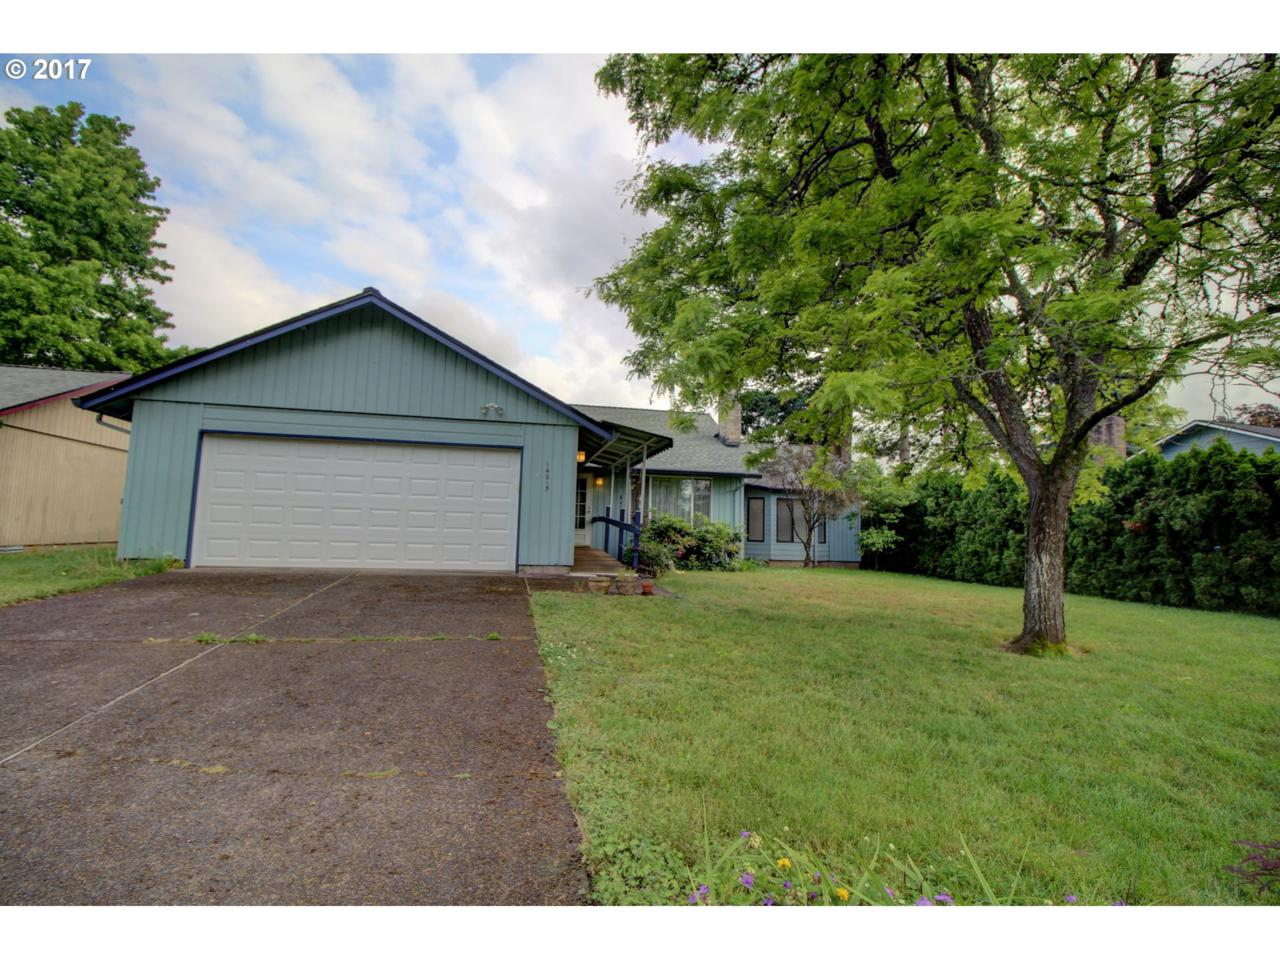 14015 SE 12TH St, Vancouver, WA 98683 (MLS #17257574) :: The Dale Chumbley Group